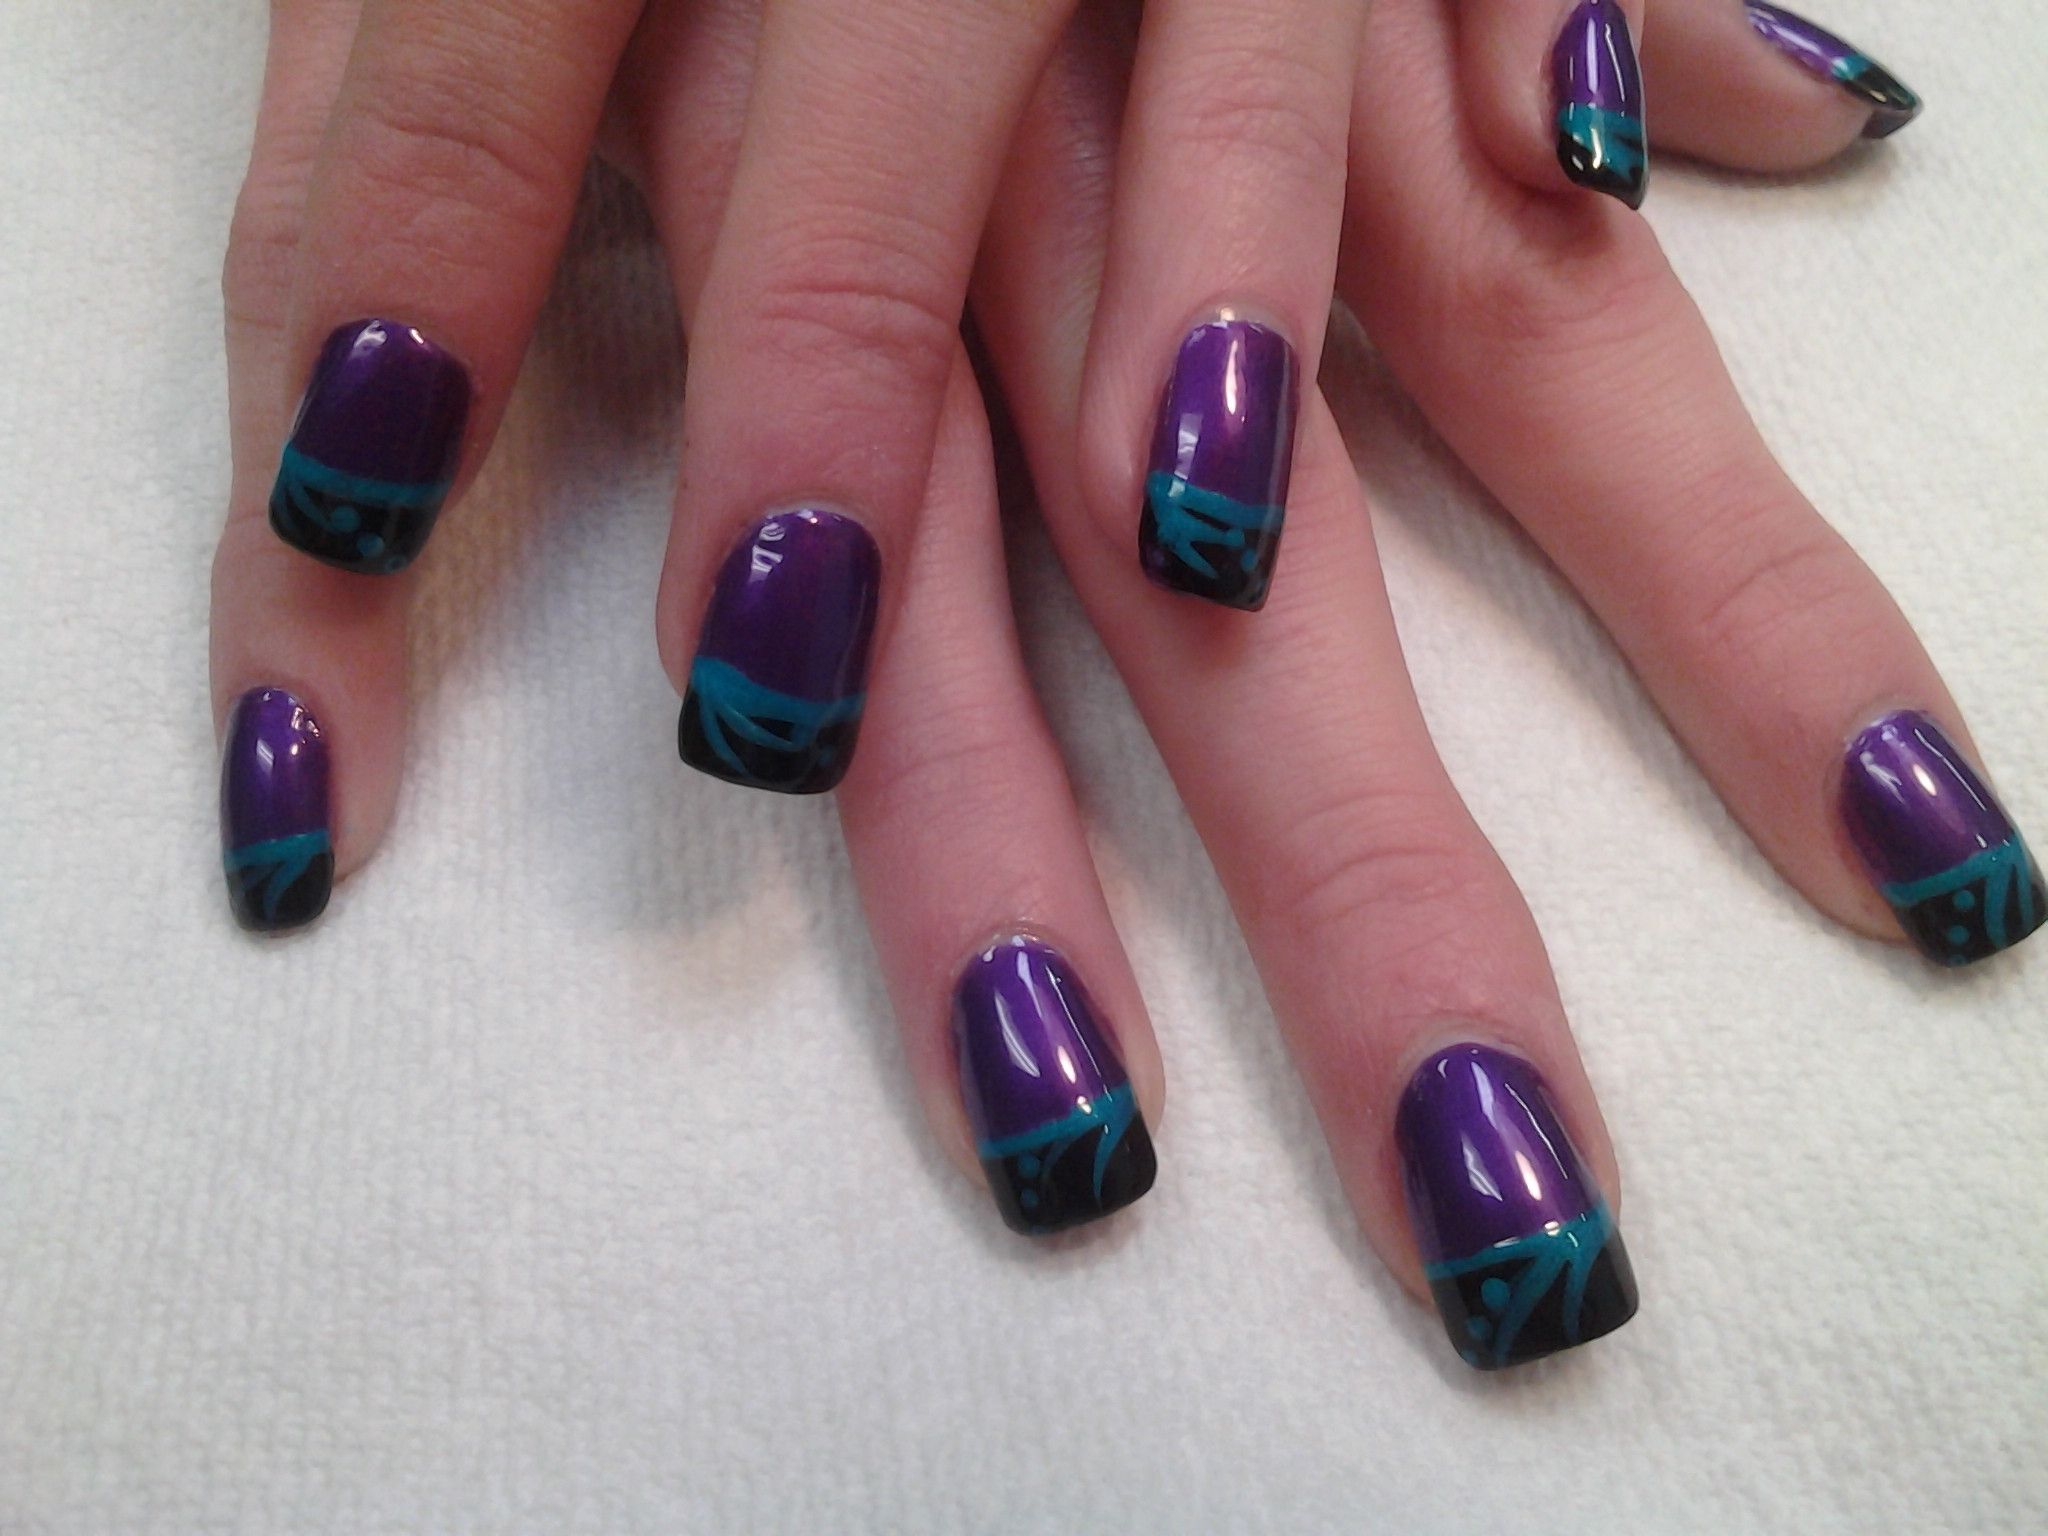 Acrylics with China glaze purple, black French tips & turned up ...